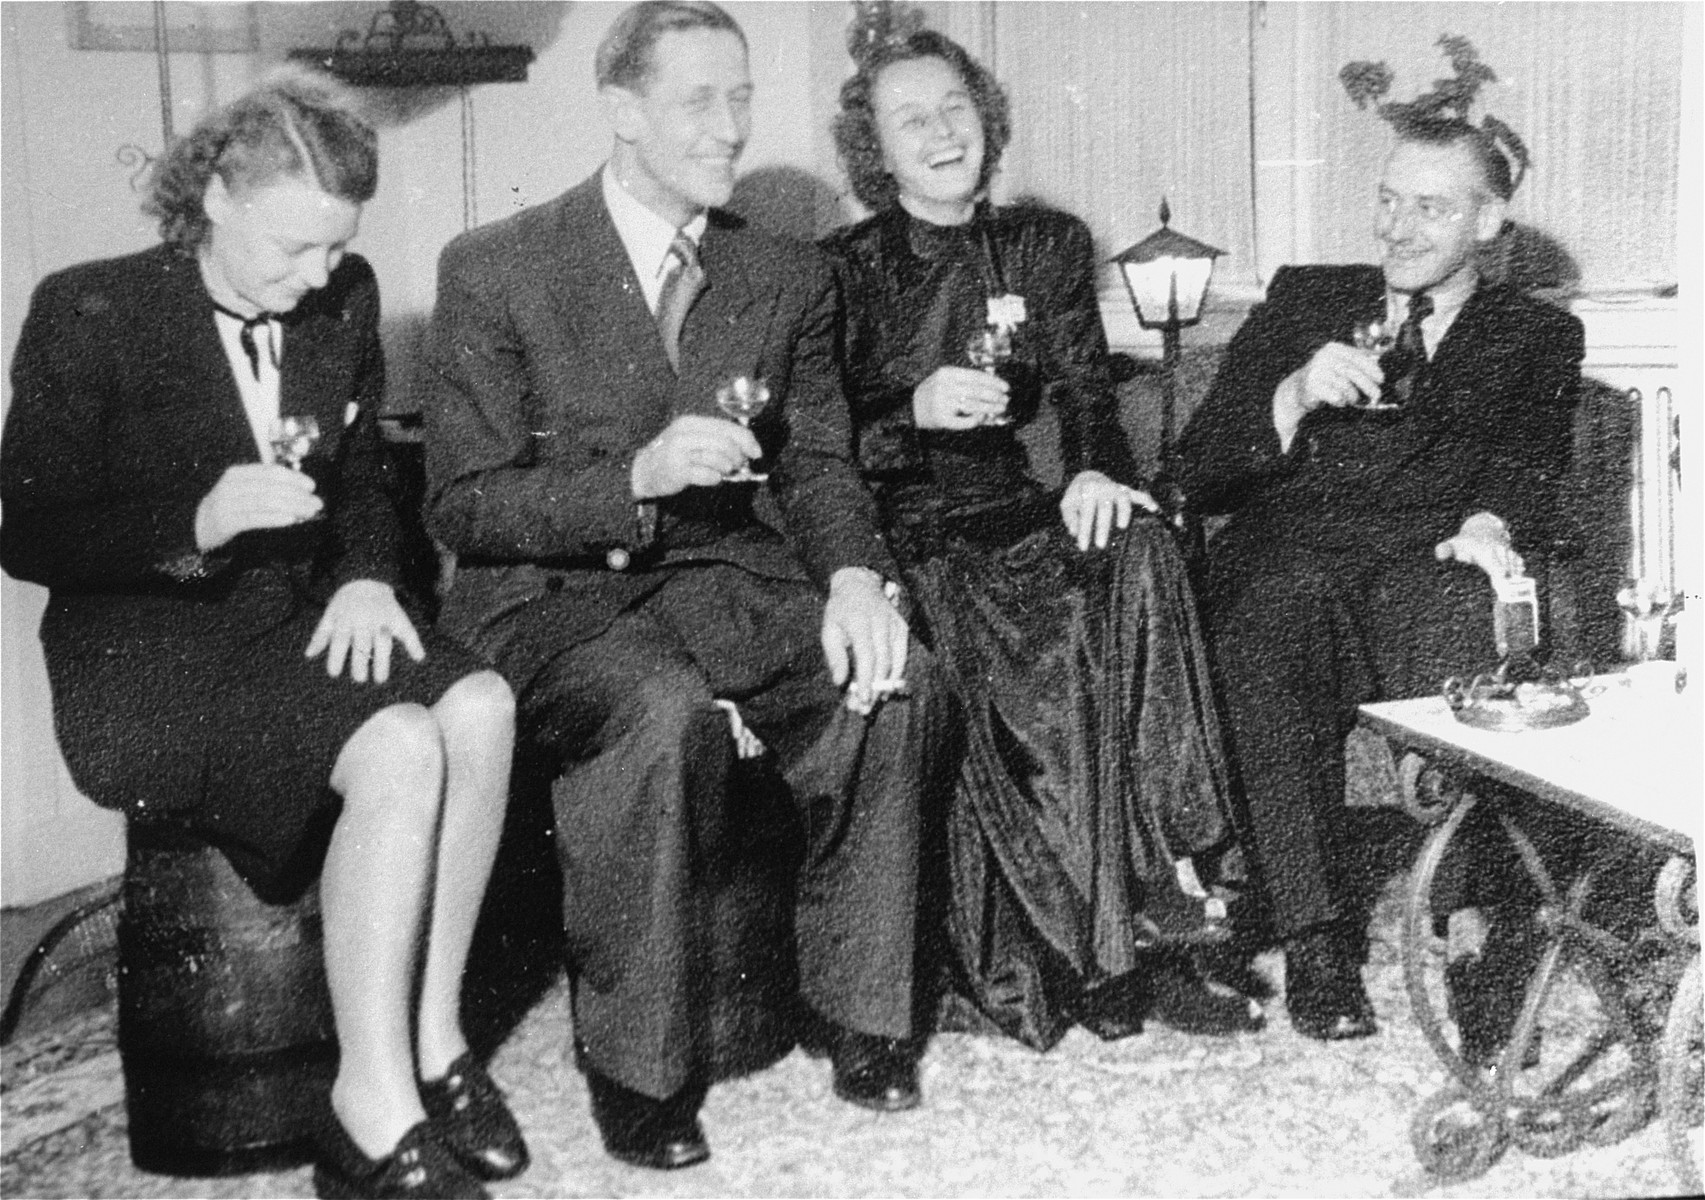 SS-Obersturmbannfuehrer Albert Konrad Gemmeker (far right) entertains guests visiting Westerbork for Christmas celebrations.    Pictured from left to right are: Frau Winkelkaemper (secretary of Ferdinand Hugo Aus der Fuenten), SS-Haupsturmbannfuehrer Ferdinand Hugo Aus der Fuenten (Head of the Central Office of Jewish Emigration in Amsterdam), Elisabeth Helena Hassel-Muellender (Gemmeker's mistress) and Gemmeker.  At the time this photo was taken, Gemmeker had only been commandant of Westerbork since the previous October.  He therefore arranged for a banquet to be held at Westerbork in celebration of both Christmas and his new position.